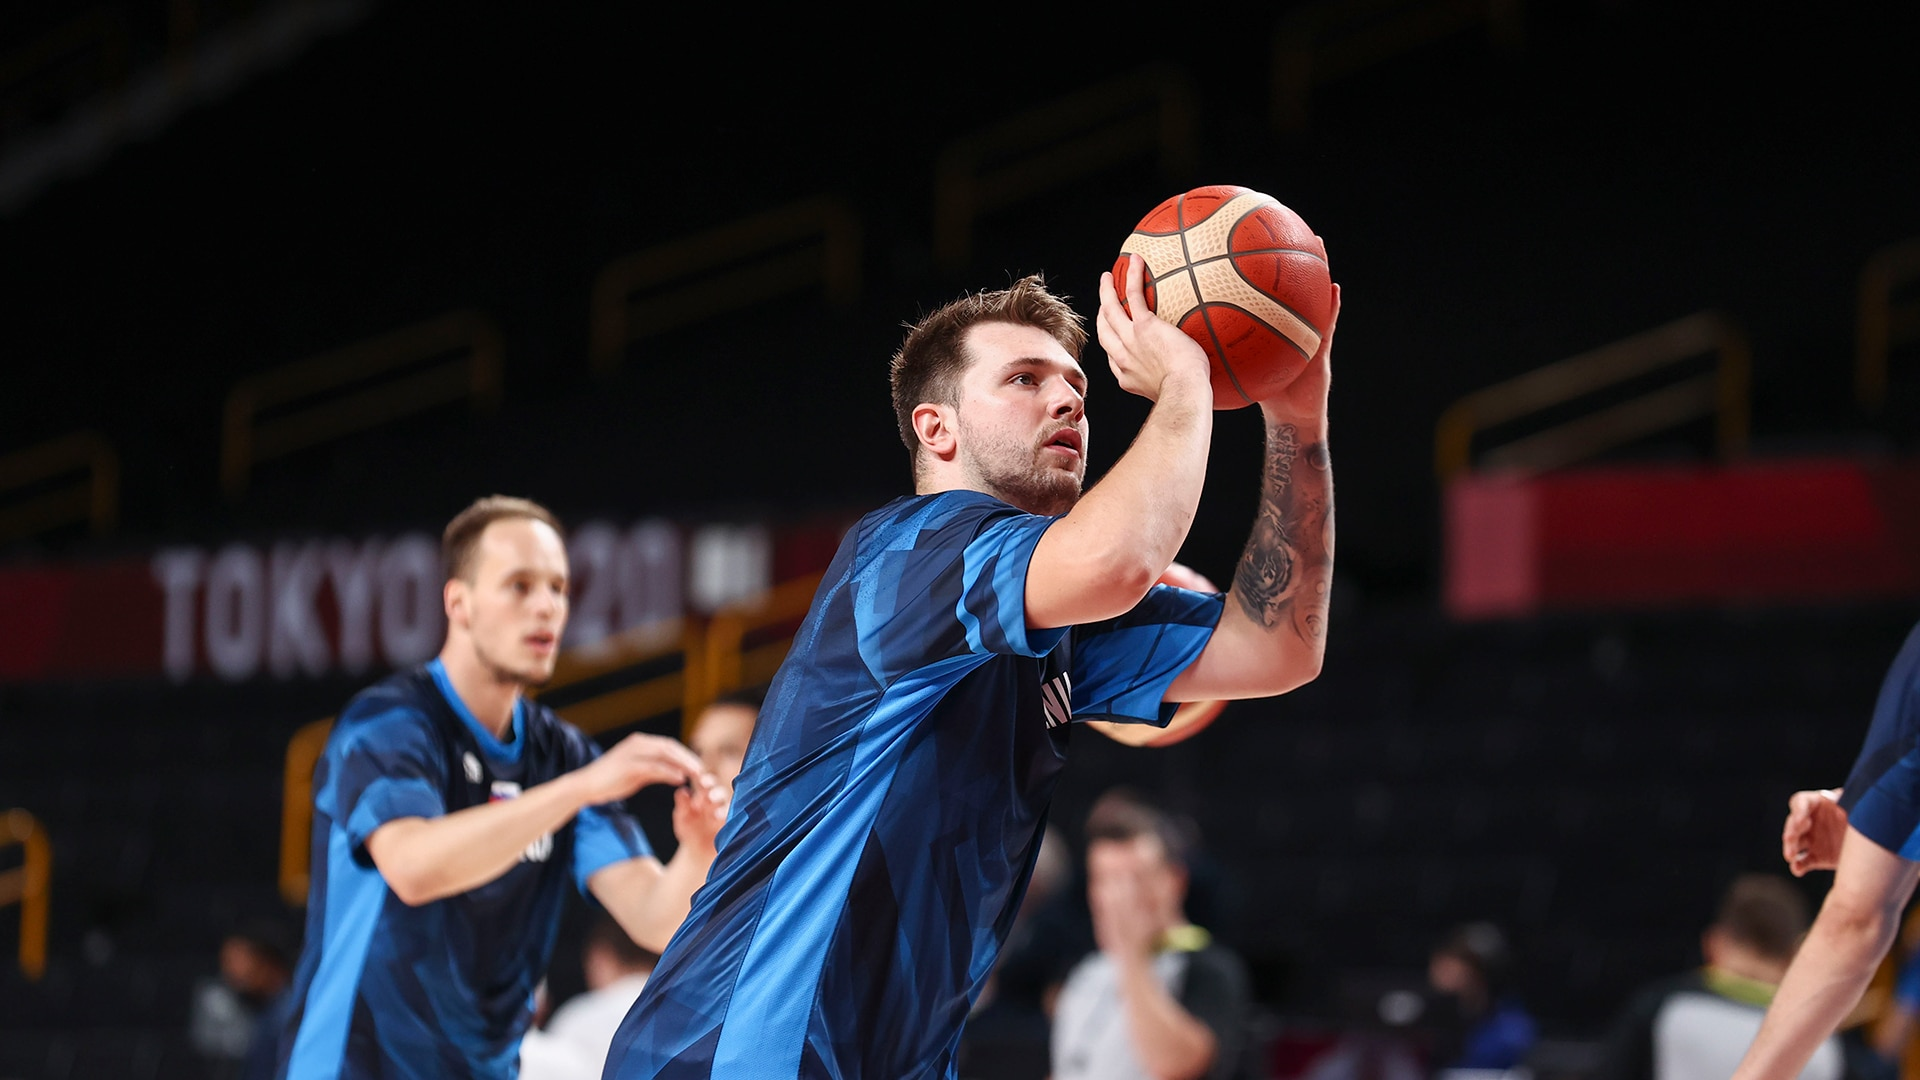 TOKYO, JAPAN - AUGUST 3: Luka Doncic #77 of the Slovenia Men's National Team warms up before...